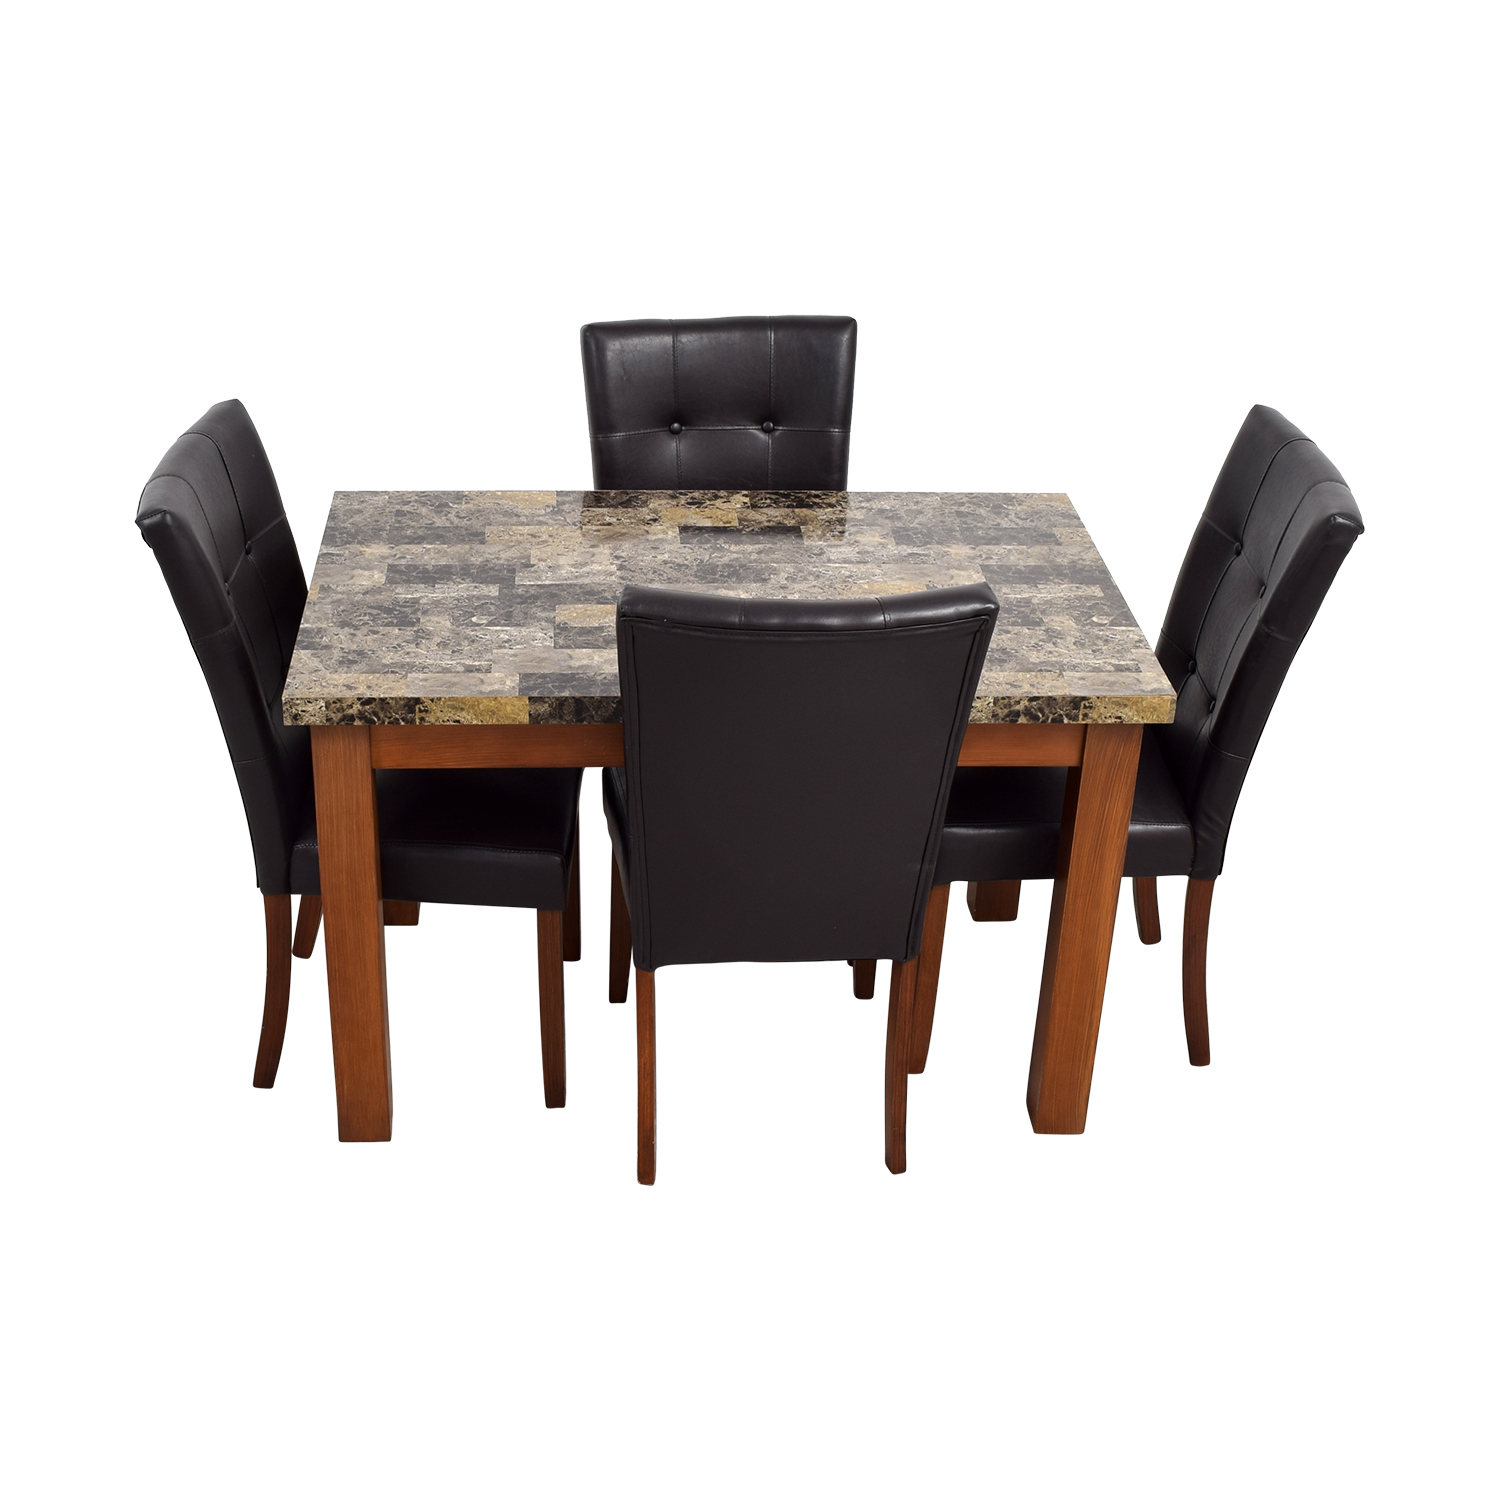 Faux Marble Dining Table with Brown Tufted Leather Chairs second hand